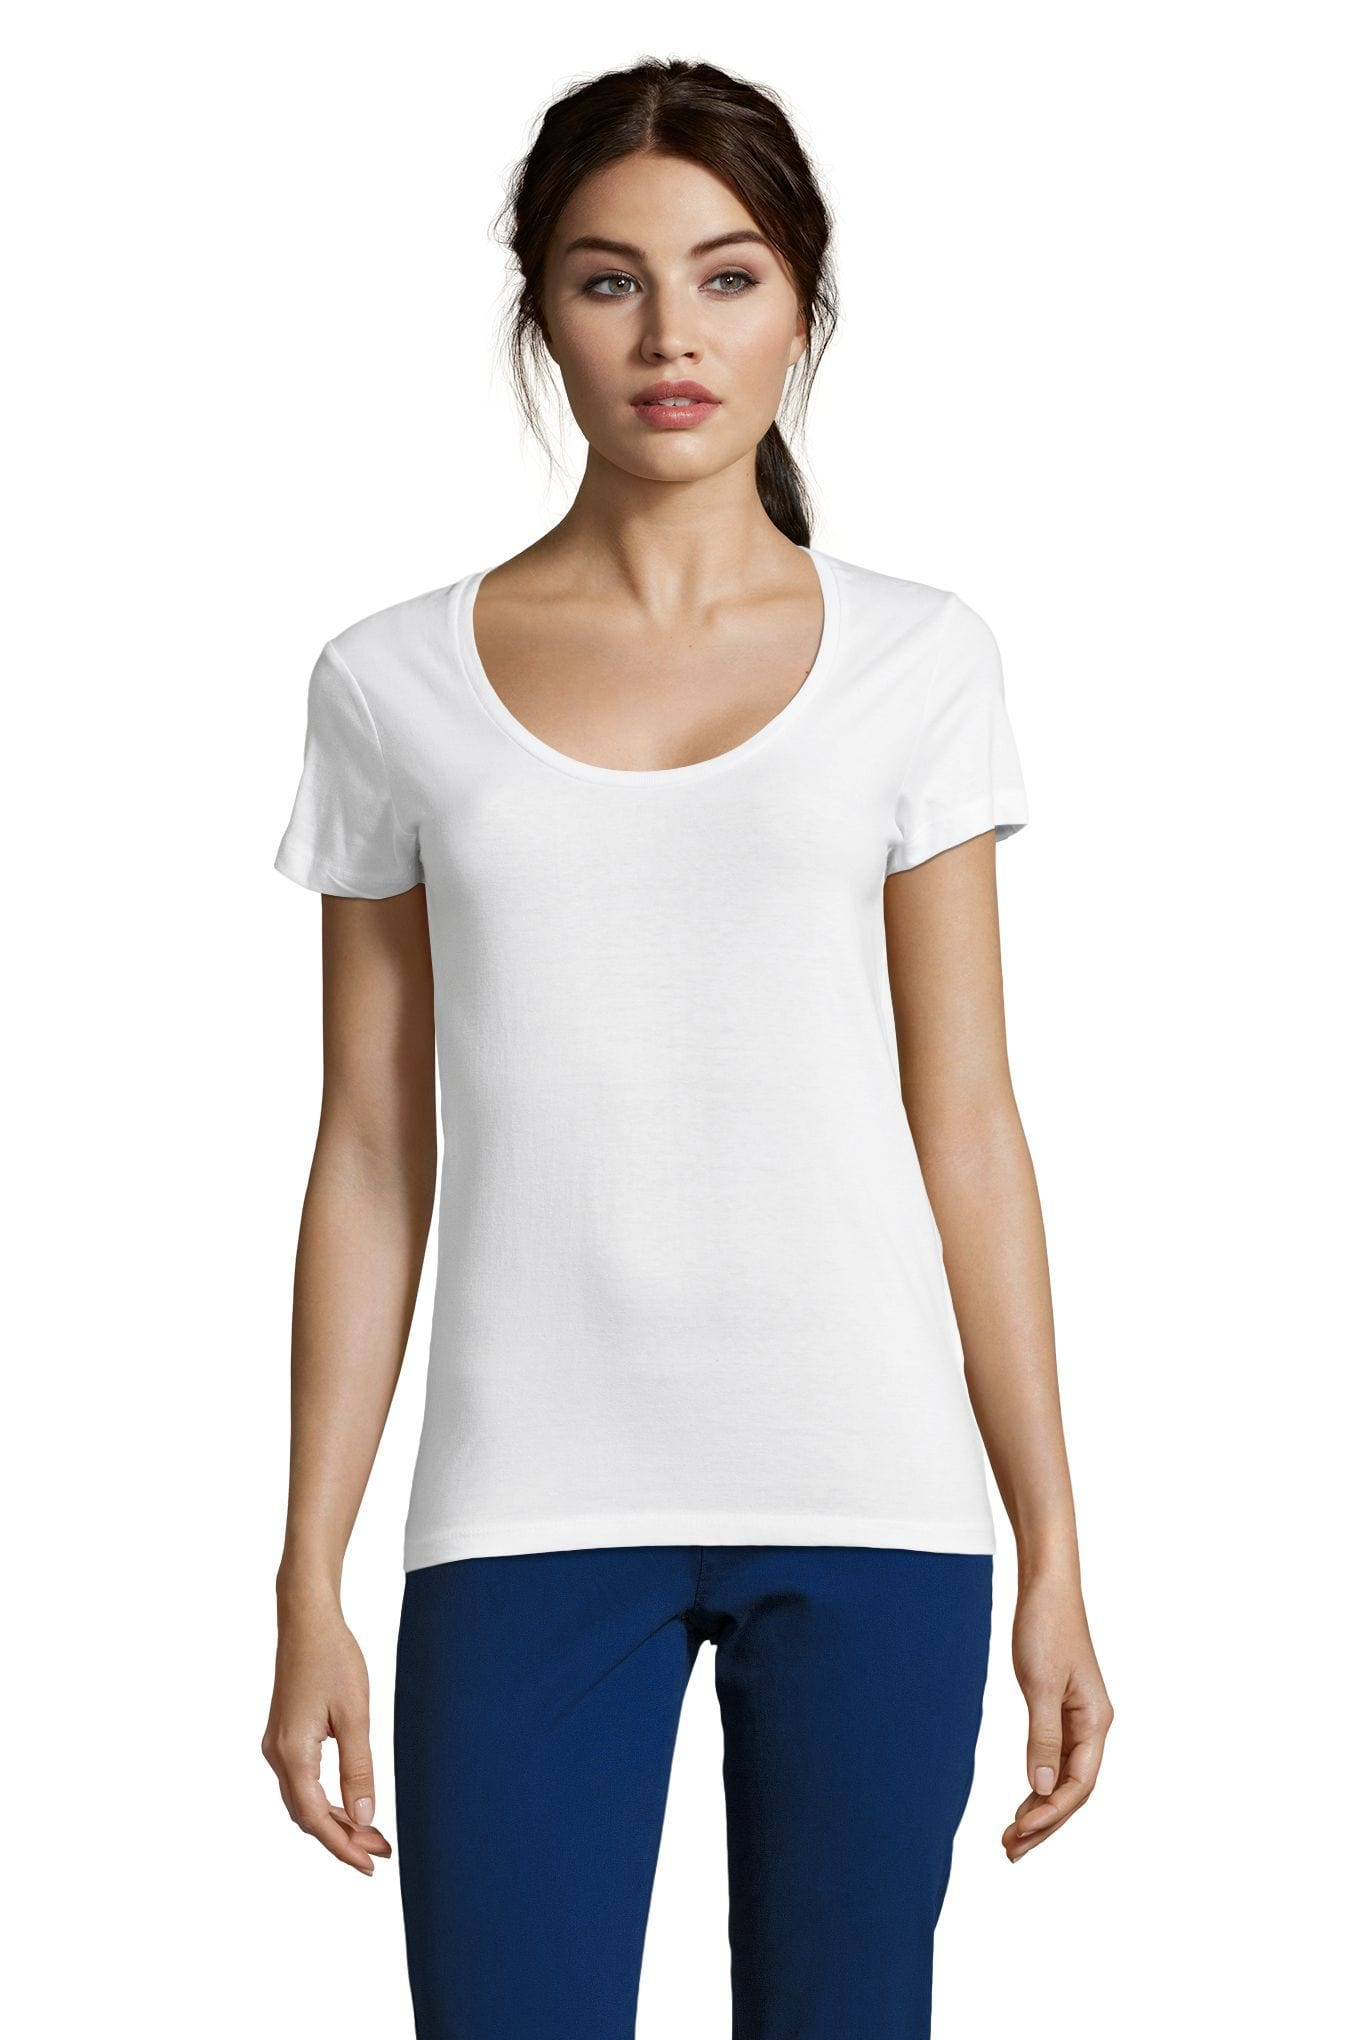 <span>Advanced Order</span> • <span>Custom Women&#x27;s Scoop Neck T-shirt</span> • <span>Your multicolor design on several t-shirt colors of your choice</span> (12 <span>colors</span>)